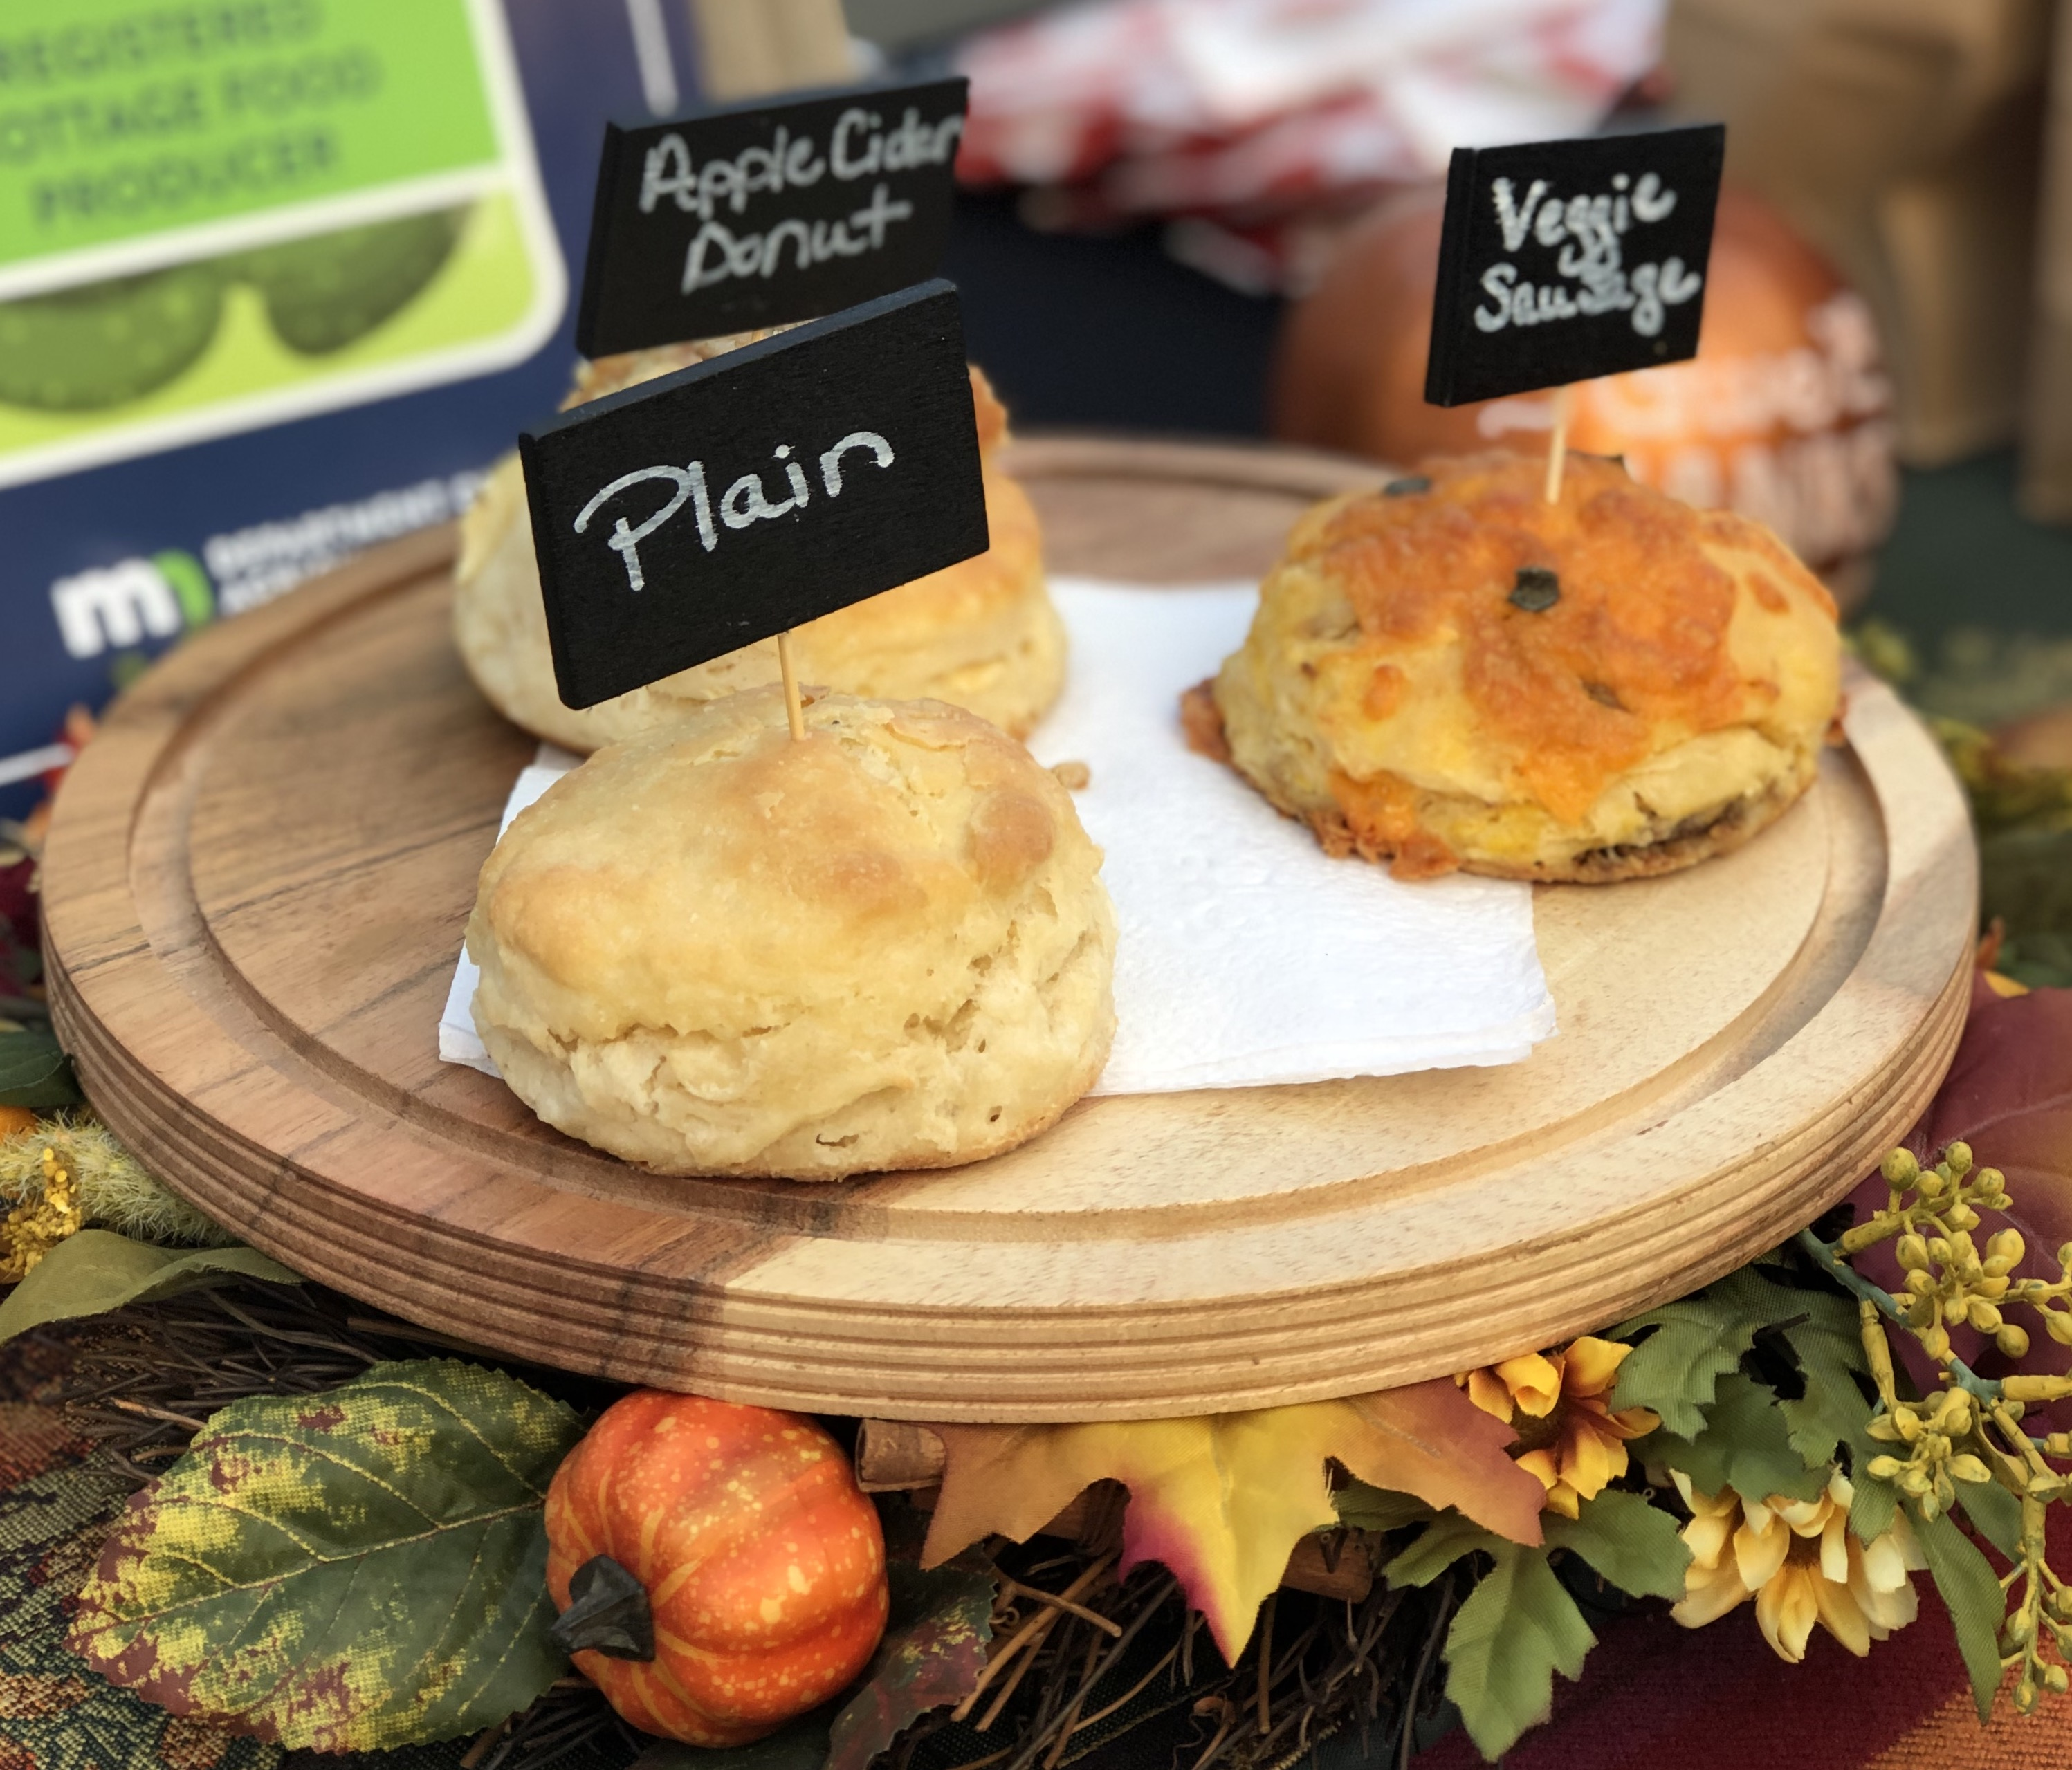 Three biscuits on a stand: plain, apple cider doughnut, and veggie and sausage